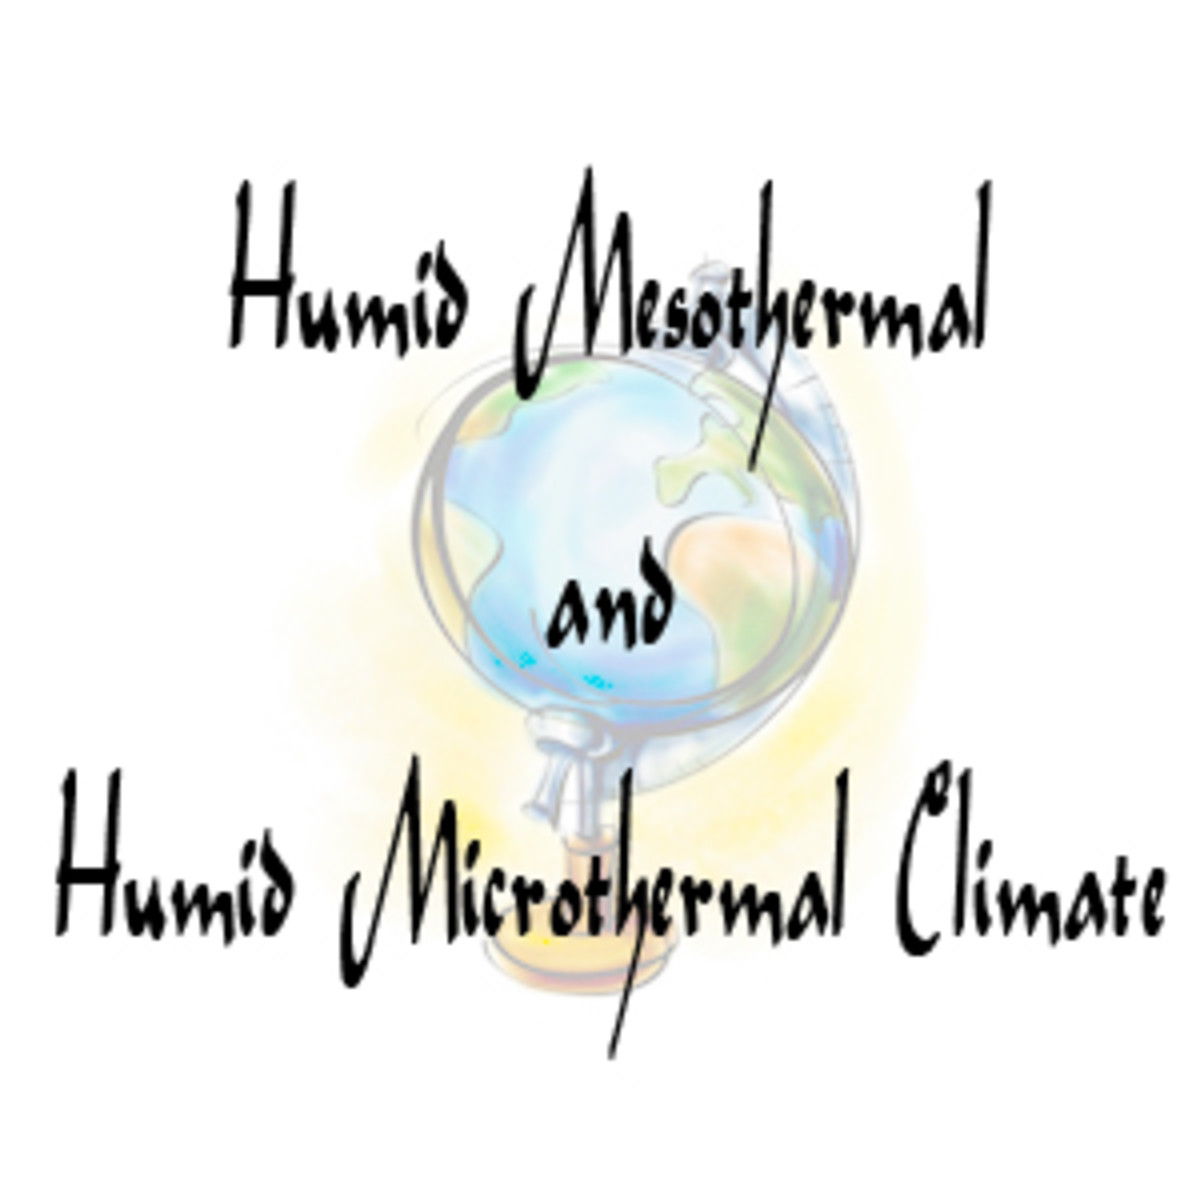 Humid Mesothermal and Humid Microthermal Climate